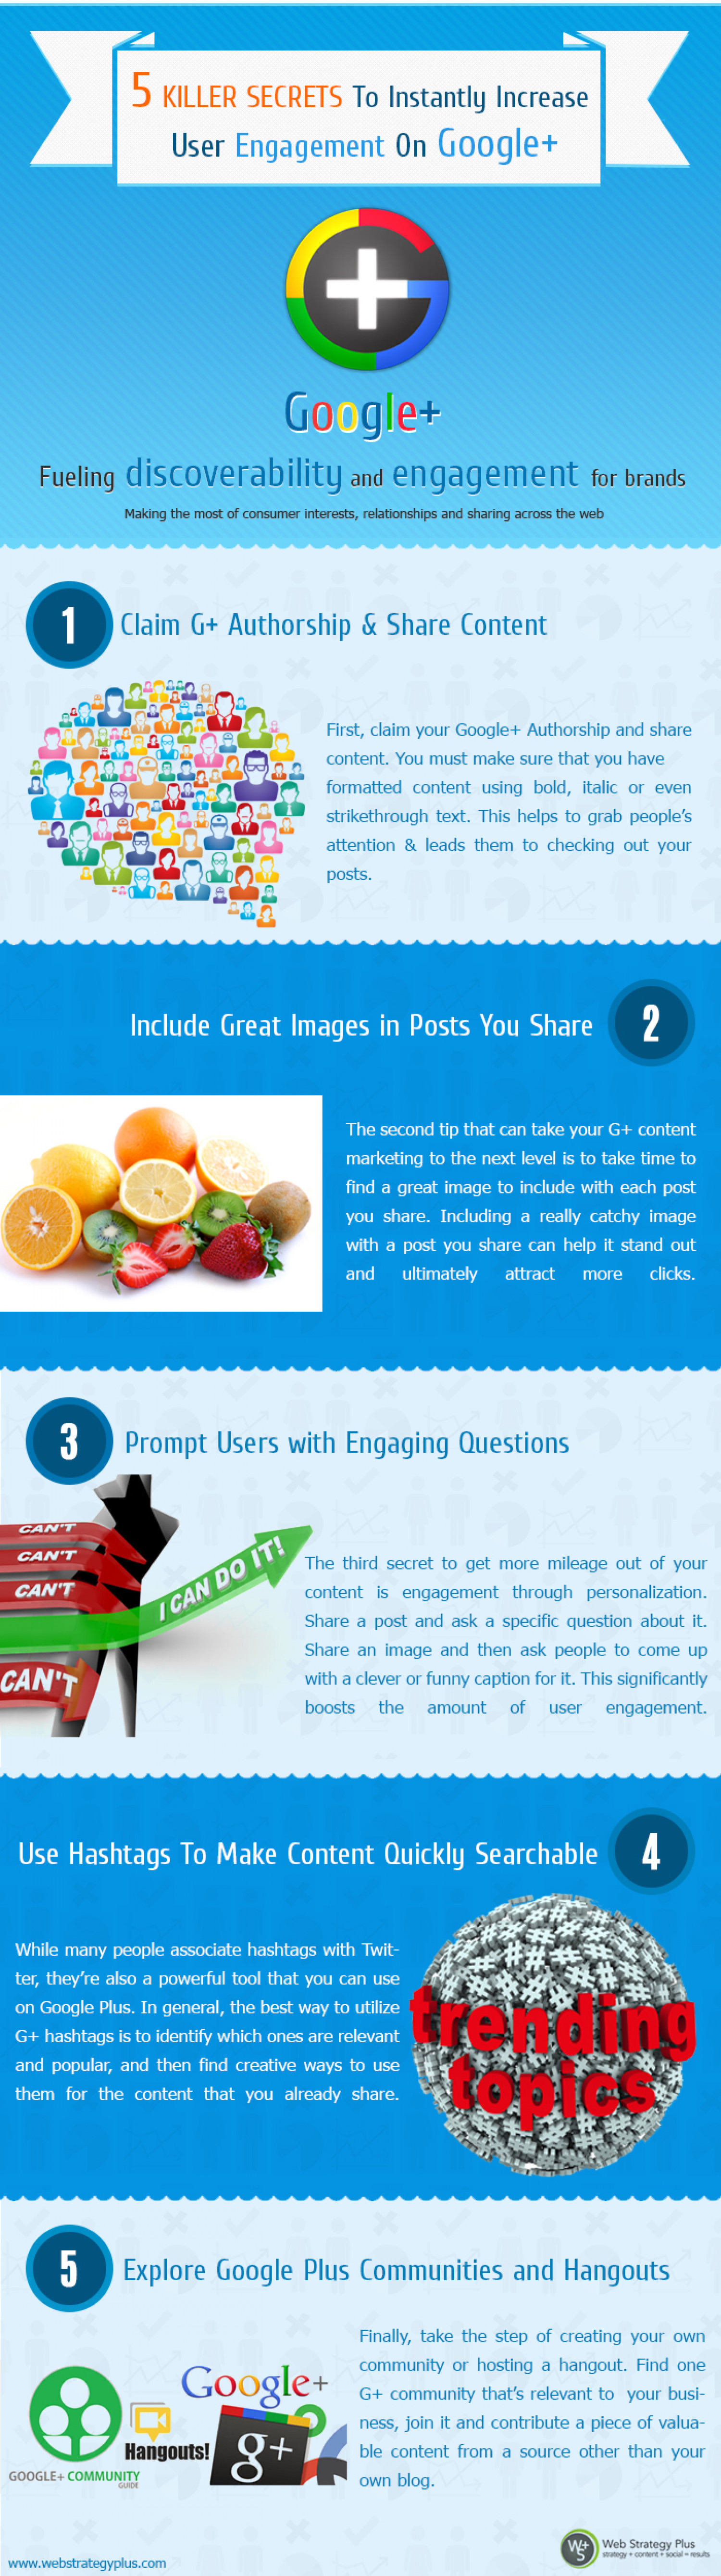 5 Killer Secrets To Instantly Increase User Engagement On Google+ Infographic